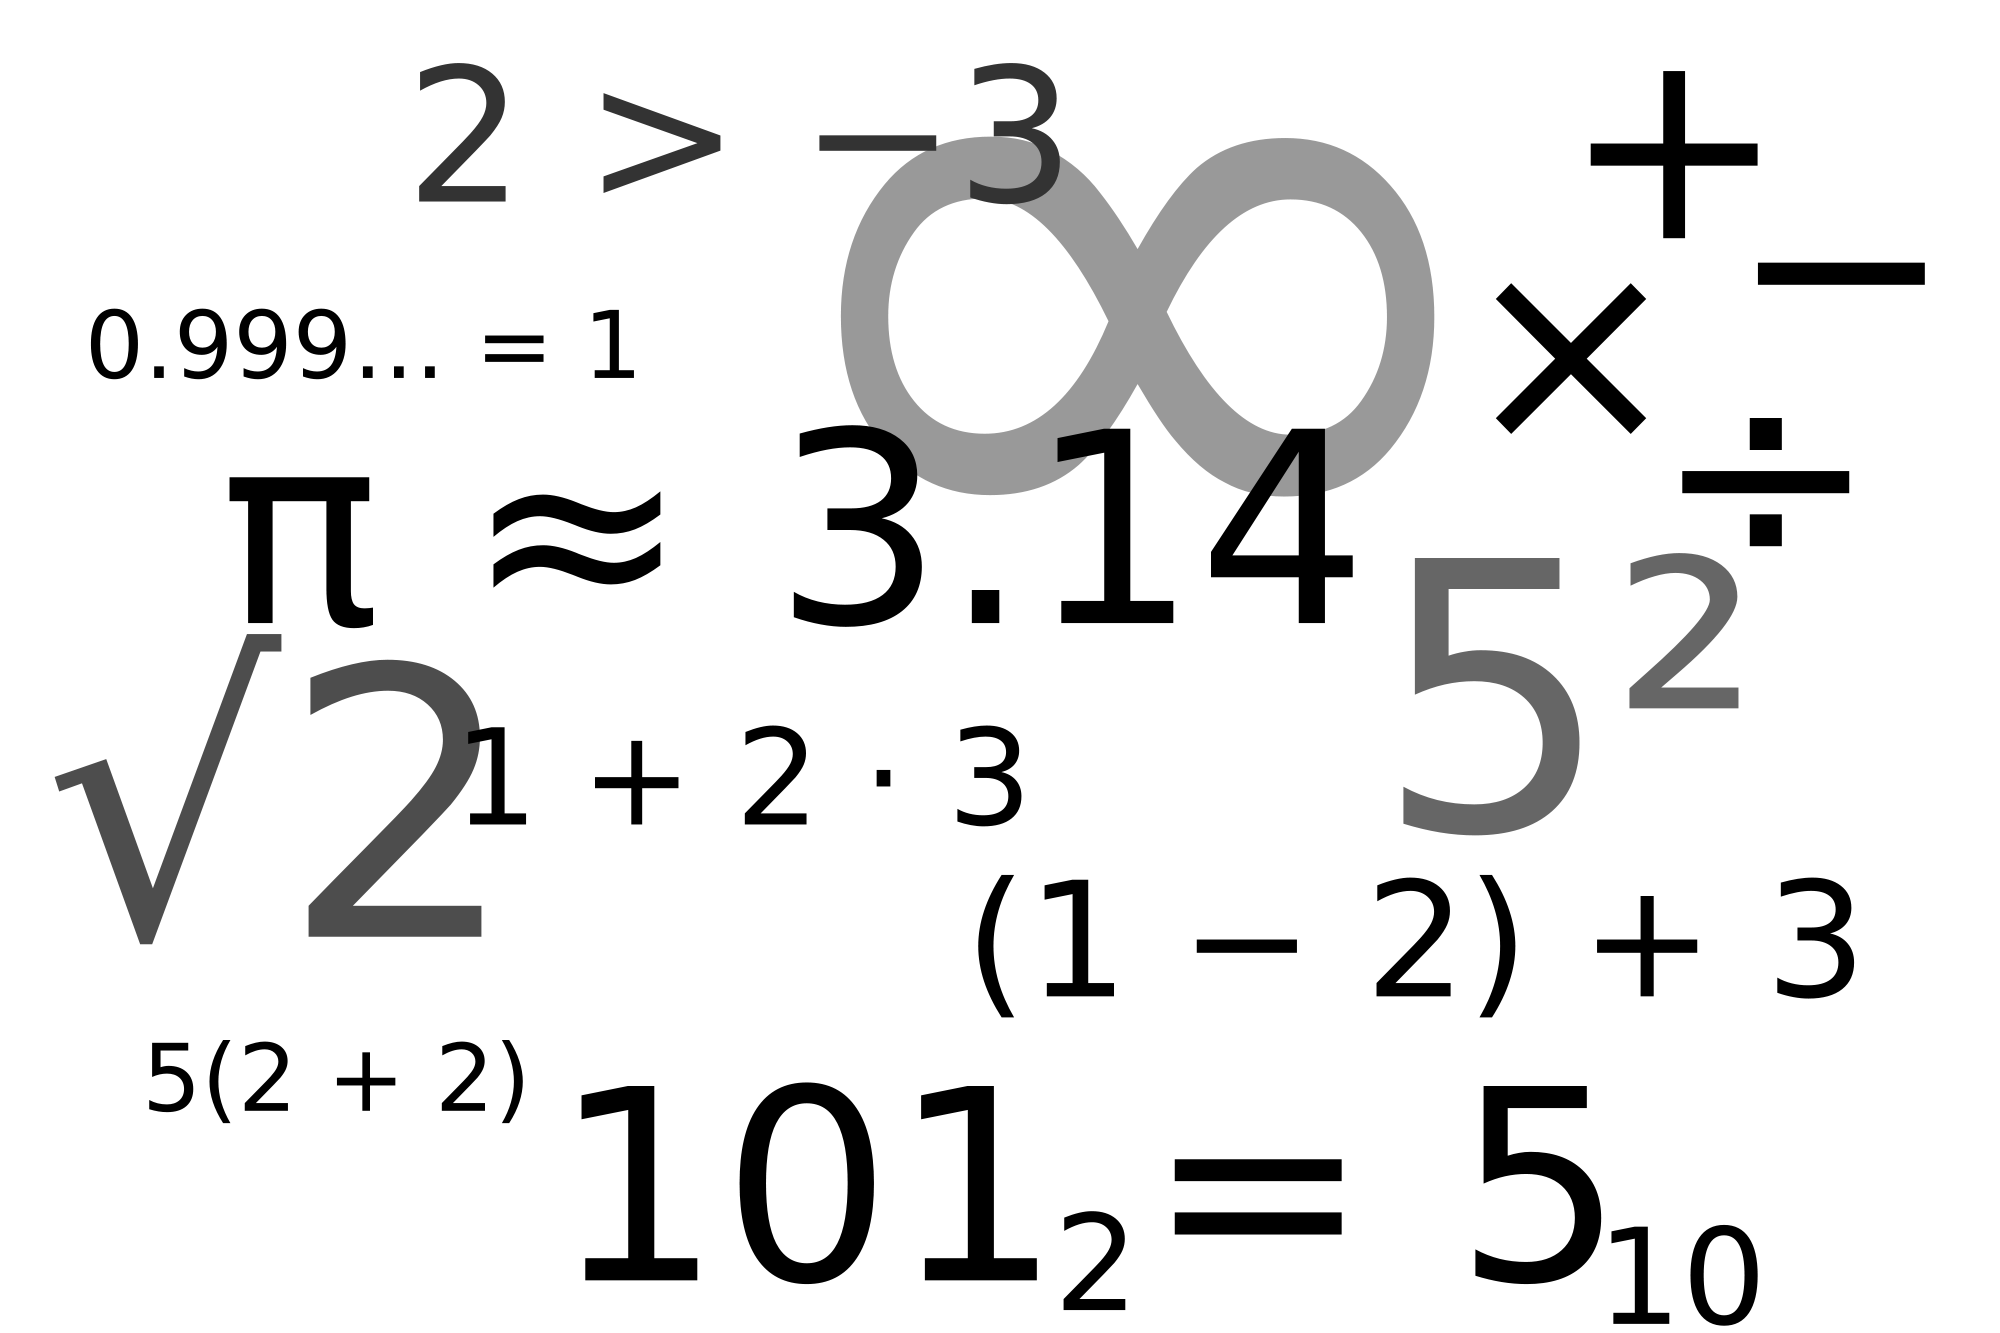 Maths Signs PNG - 165074